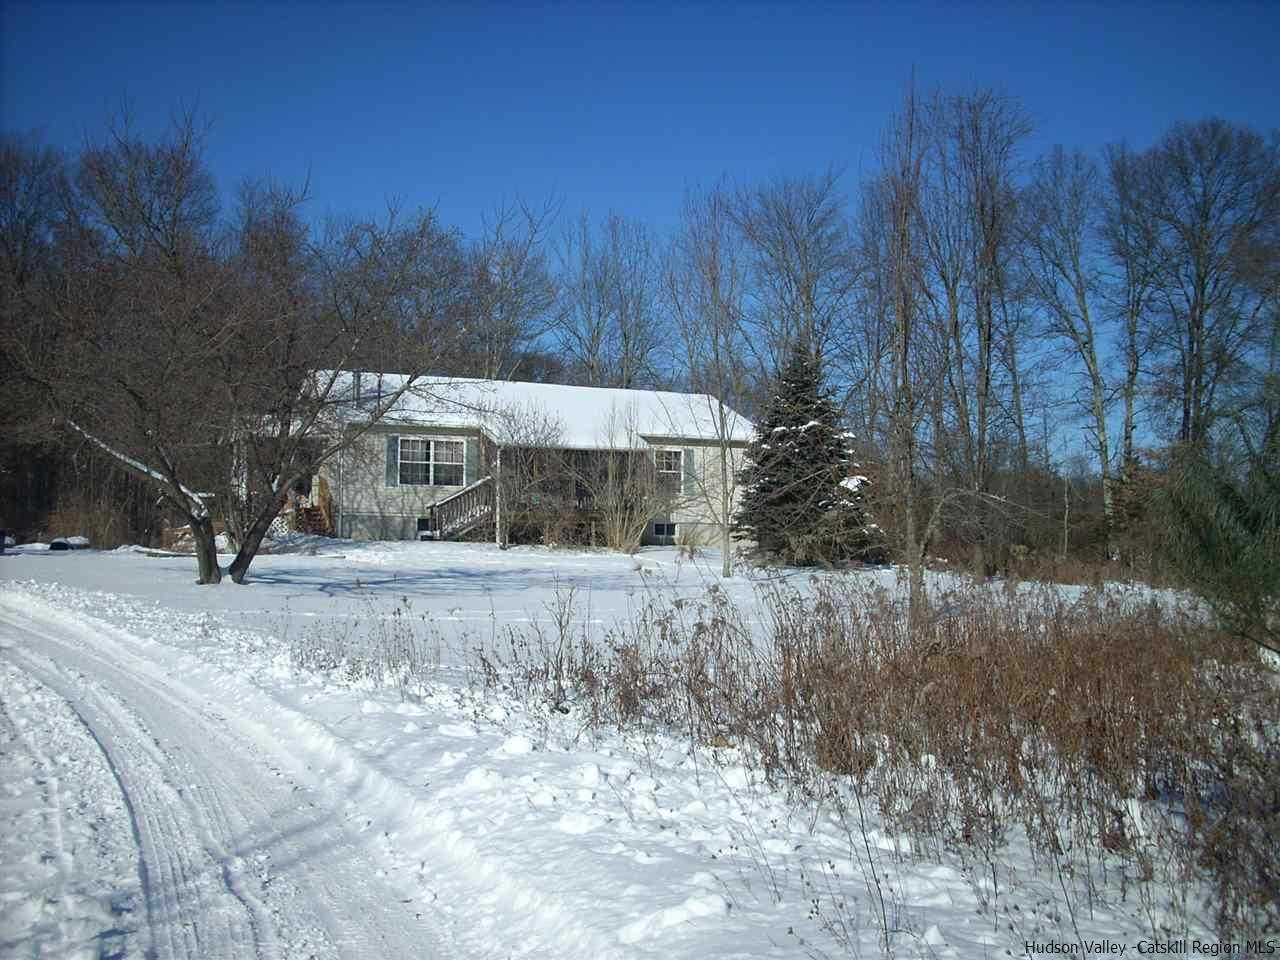 Single Family Home for Sale at 1717 Lucas Avenue Extension 1717 Lucas Avenue Extension Cottekill, New York 12419 United States